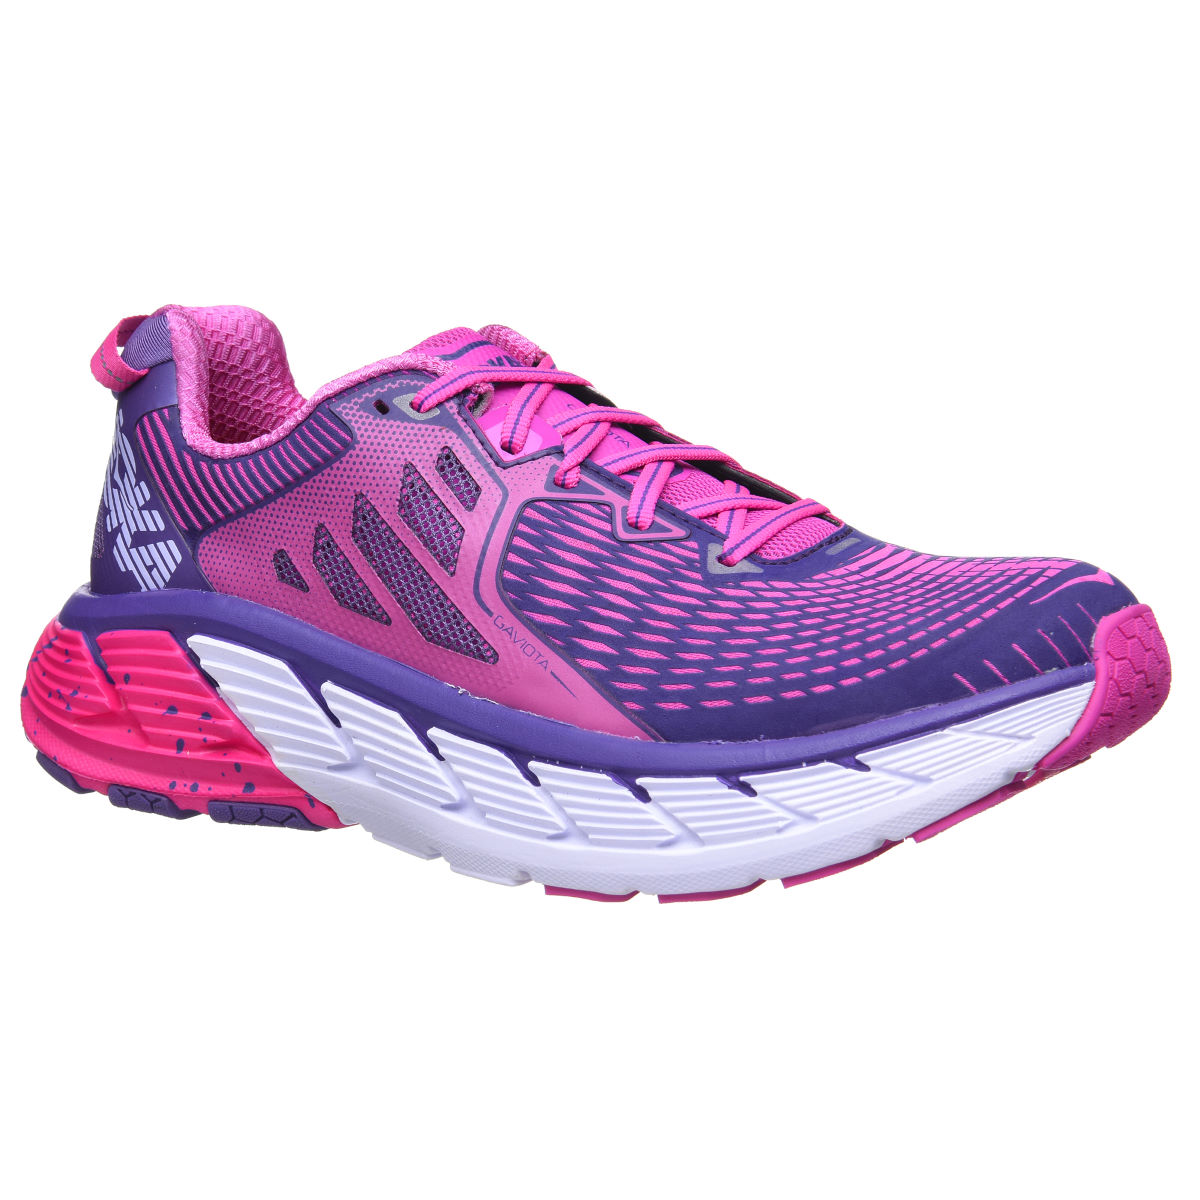 Hoka One One Gaviota Shoes   Running Shoes